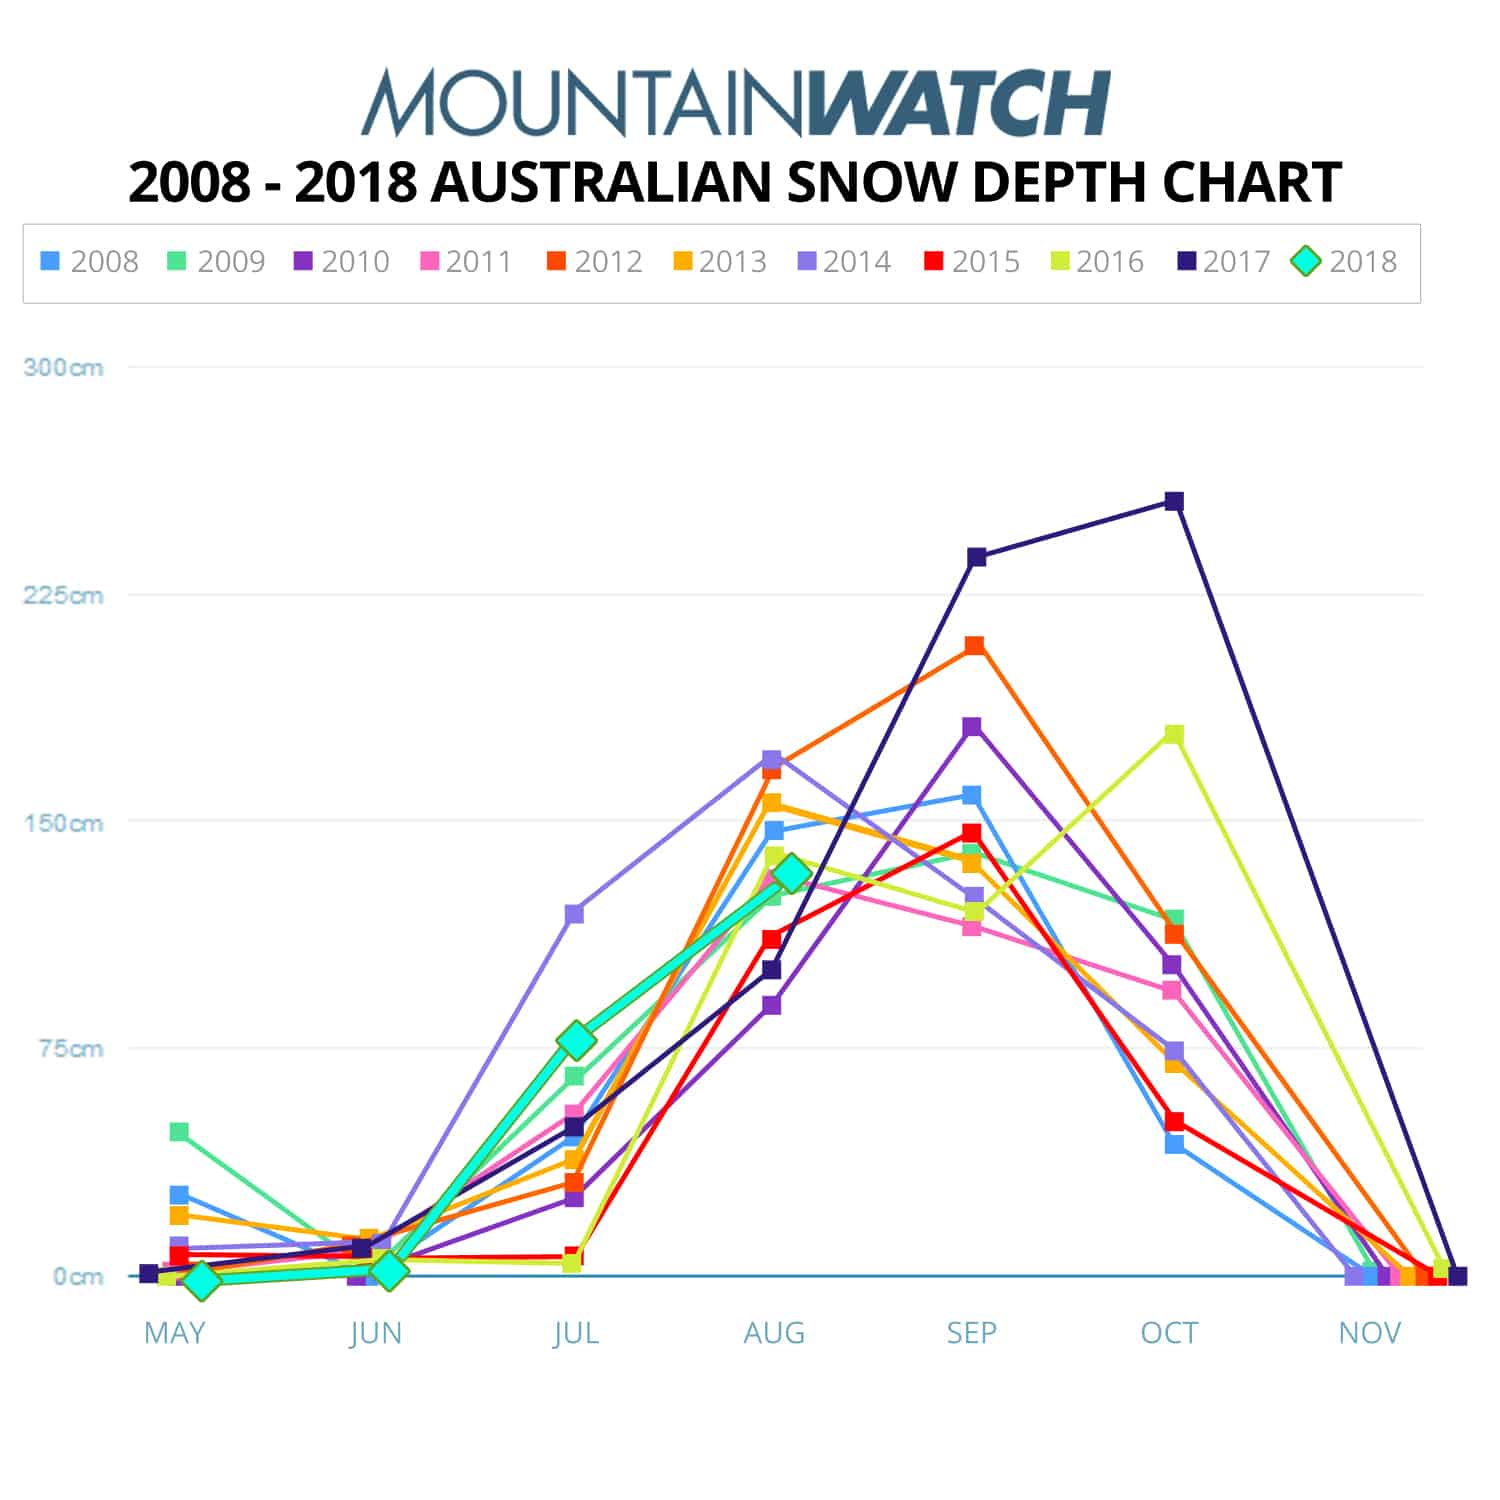 Mountainwatch Snow Depth Chart – Ranking A Decade's Worth Of Snow Depths